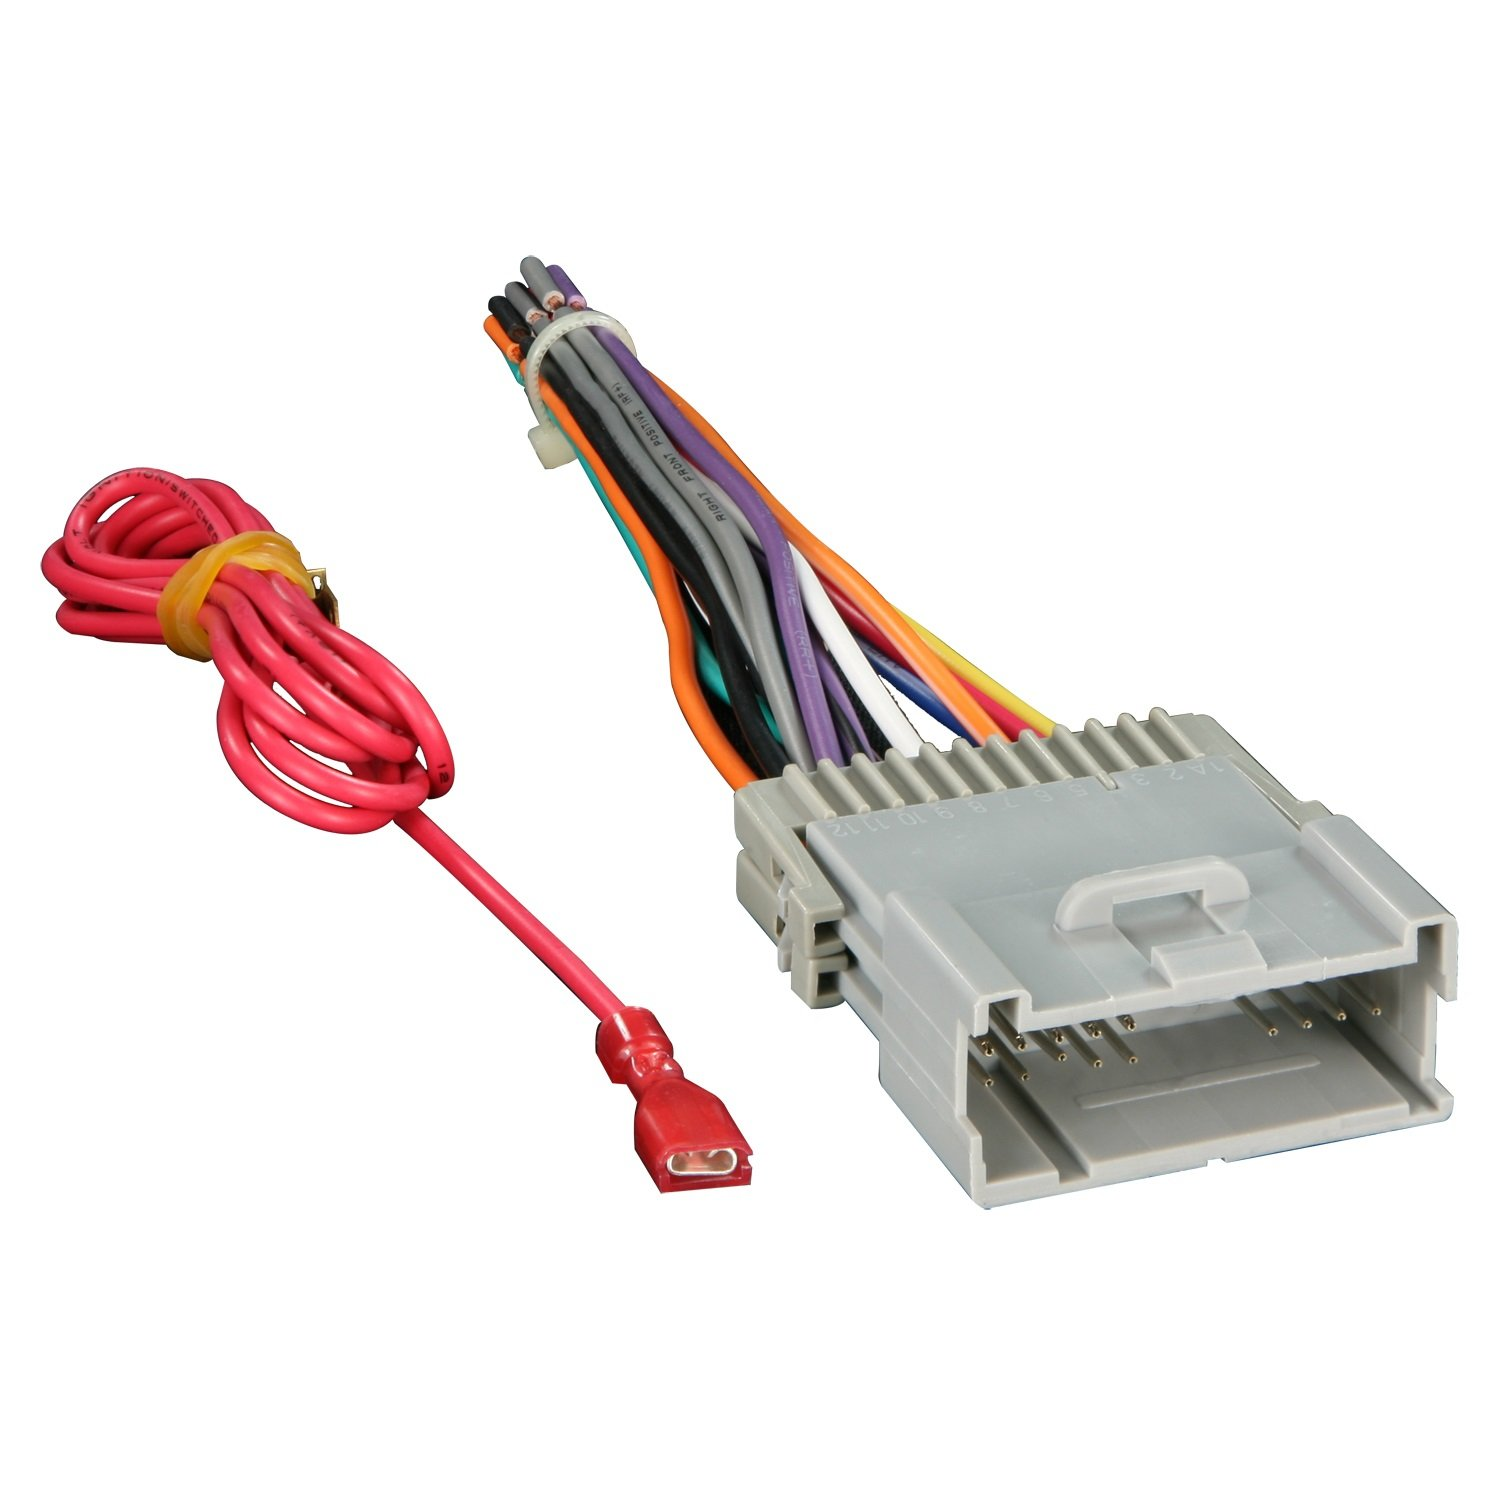 61eewxp9orL._SL1500_ amazon com metra 70 2003 radio wiring harness for gm 98 08 jvc radio wiring harness at readyjetset.co